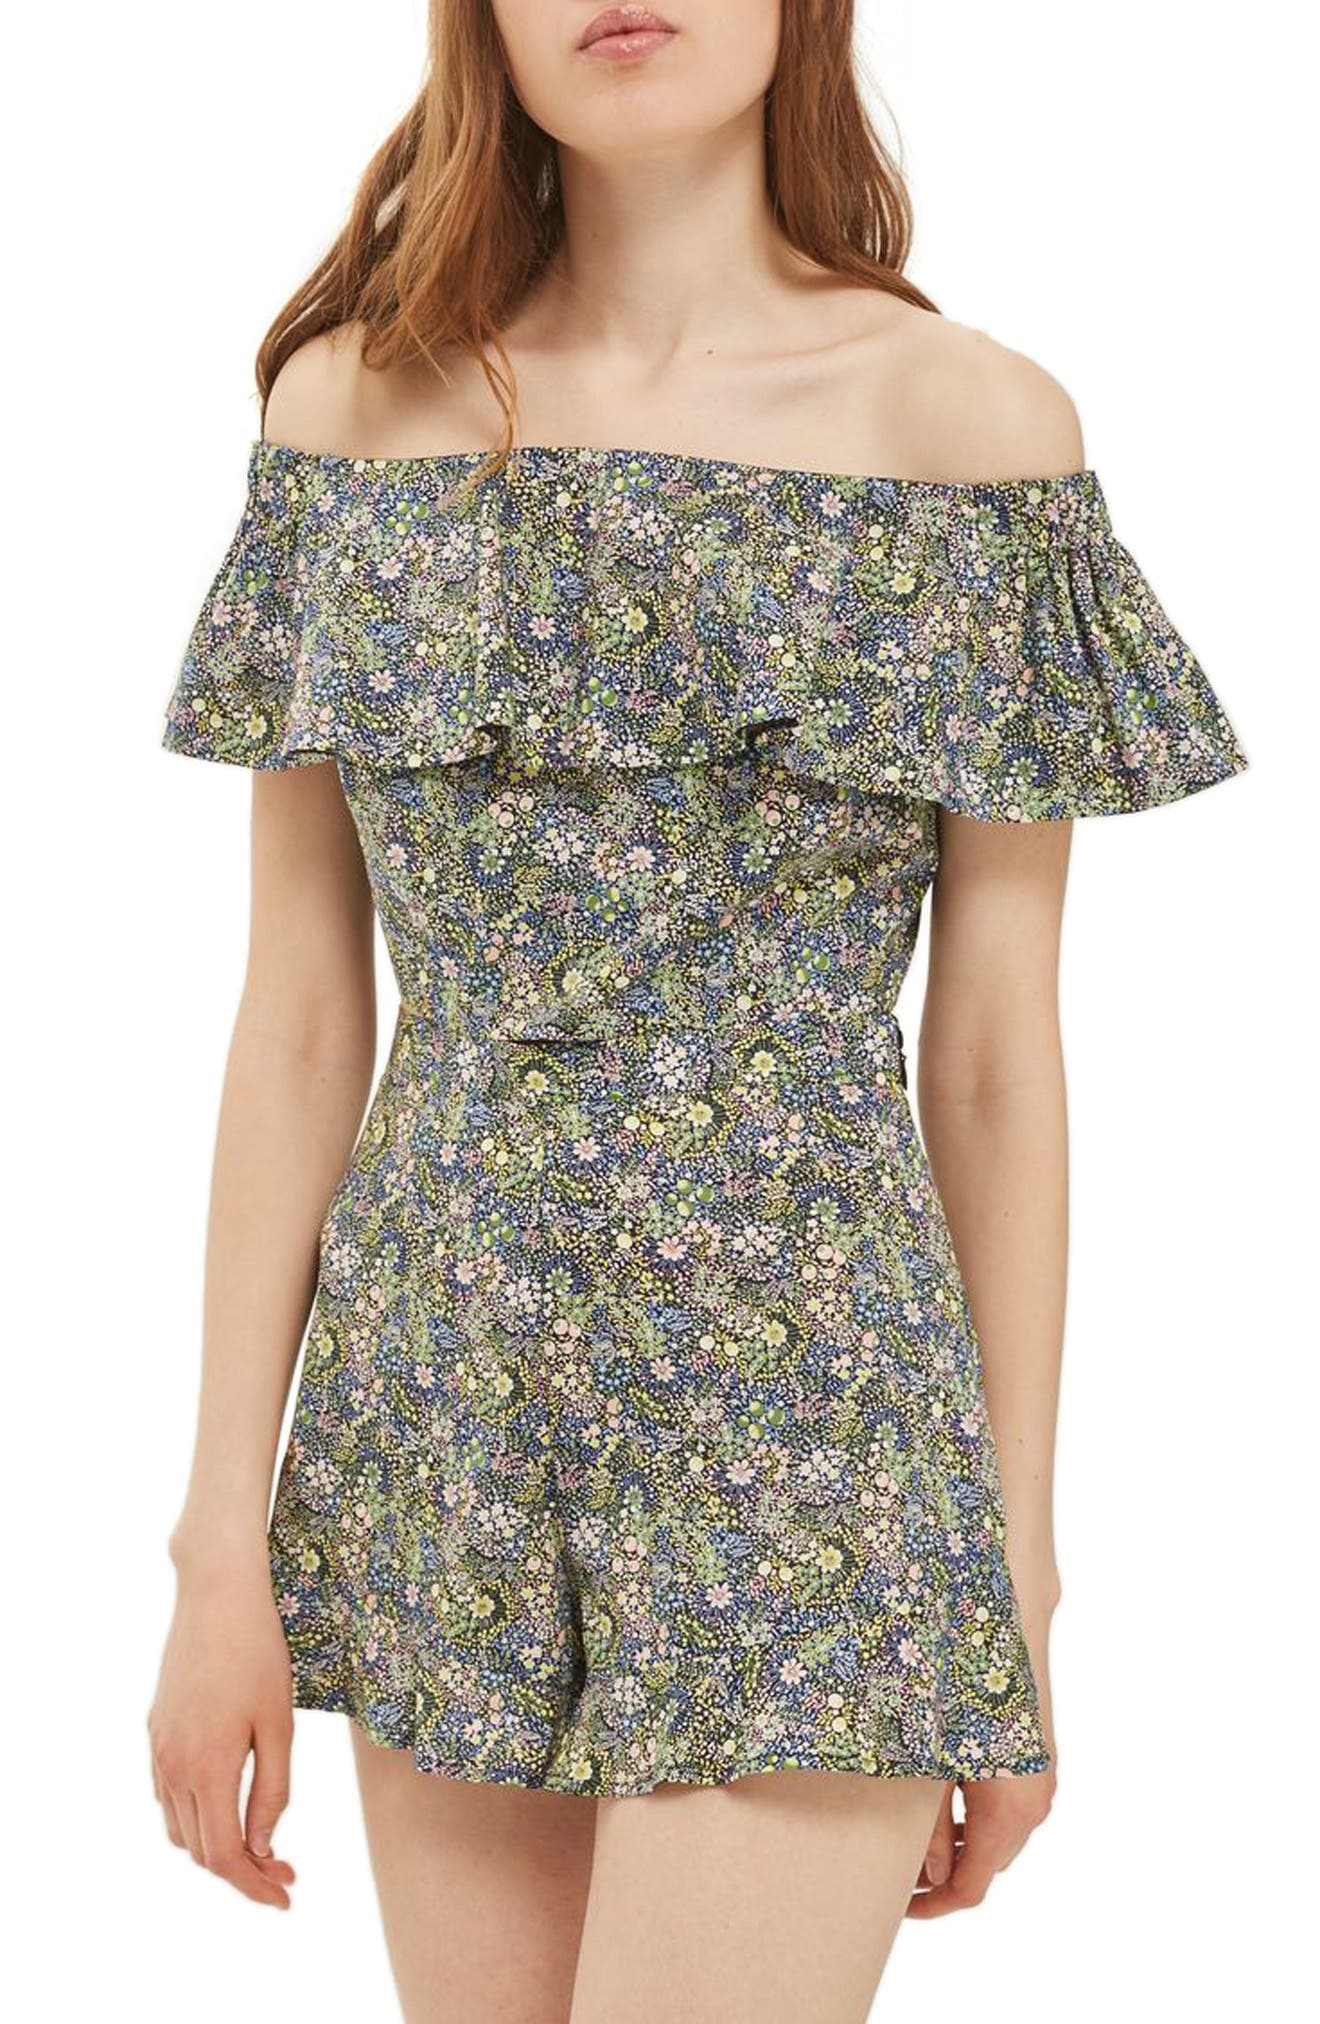 Topshop Limited Edition Liberty Floral Off the Shoulder Top